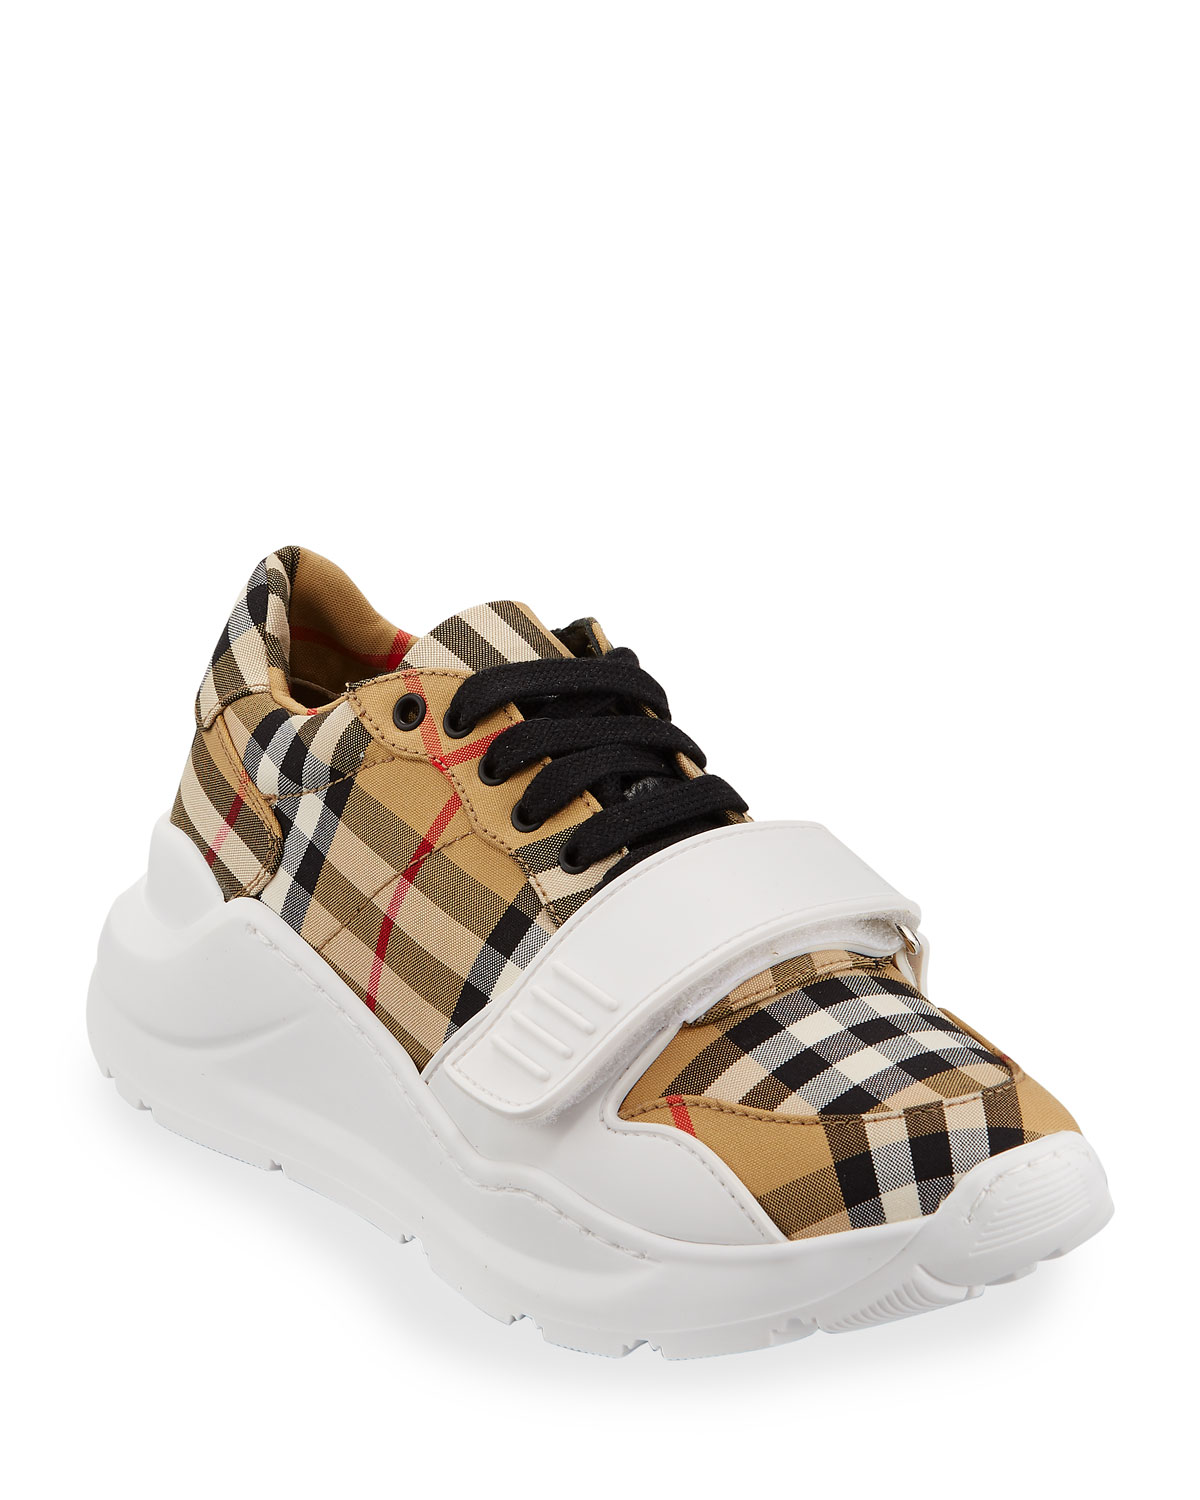 a153ce363ae0 Burberry Regis Check Low-Top Sneakers with Exaggerated Sole